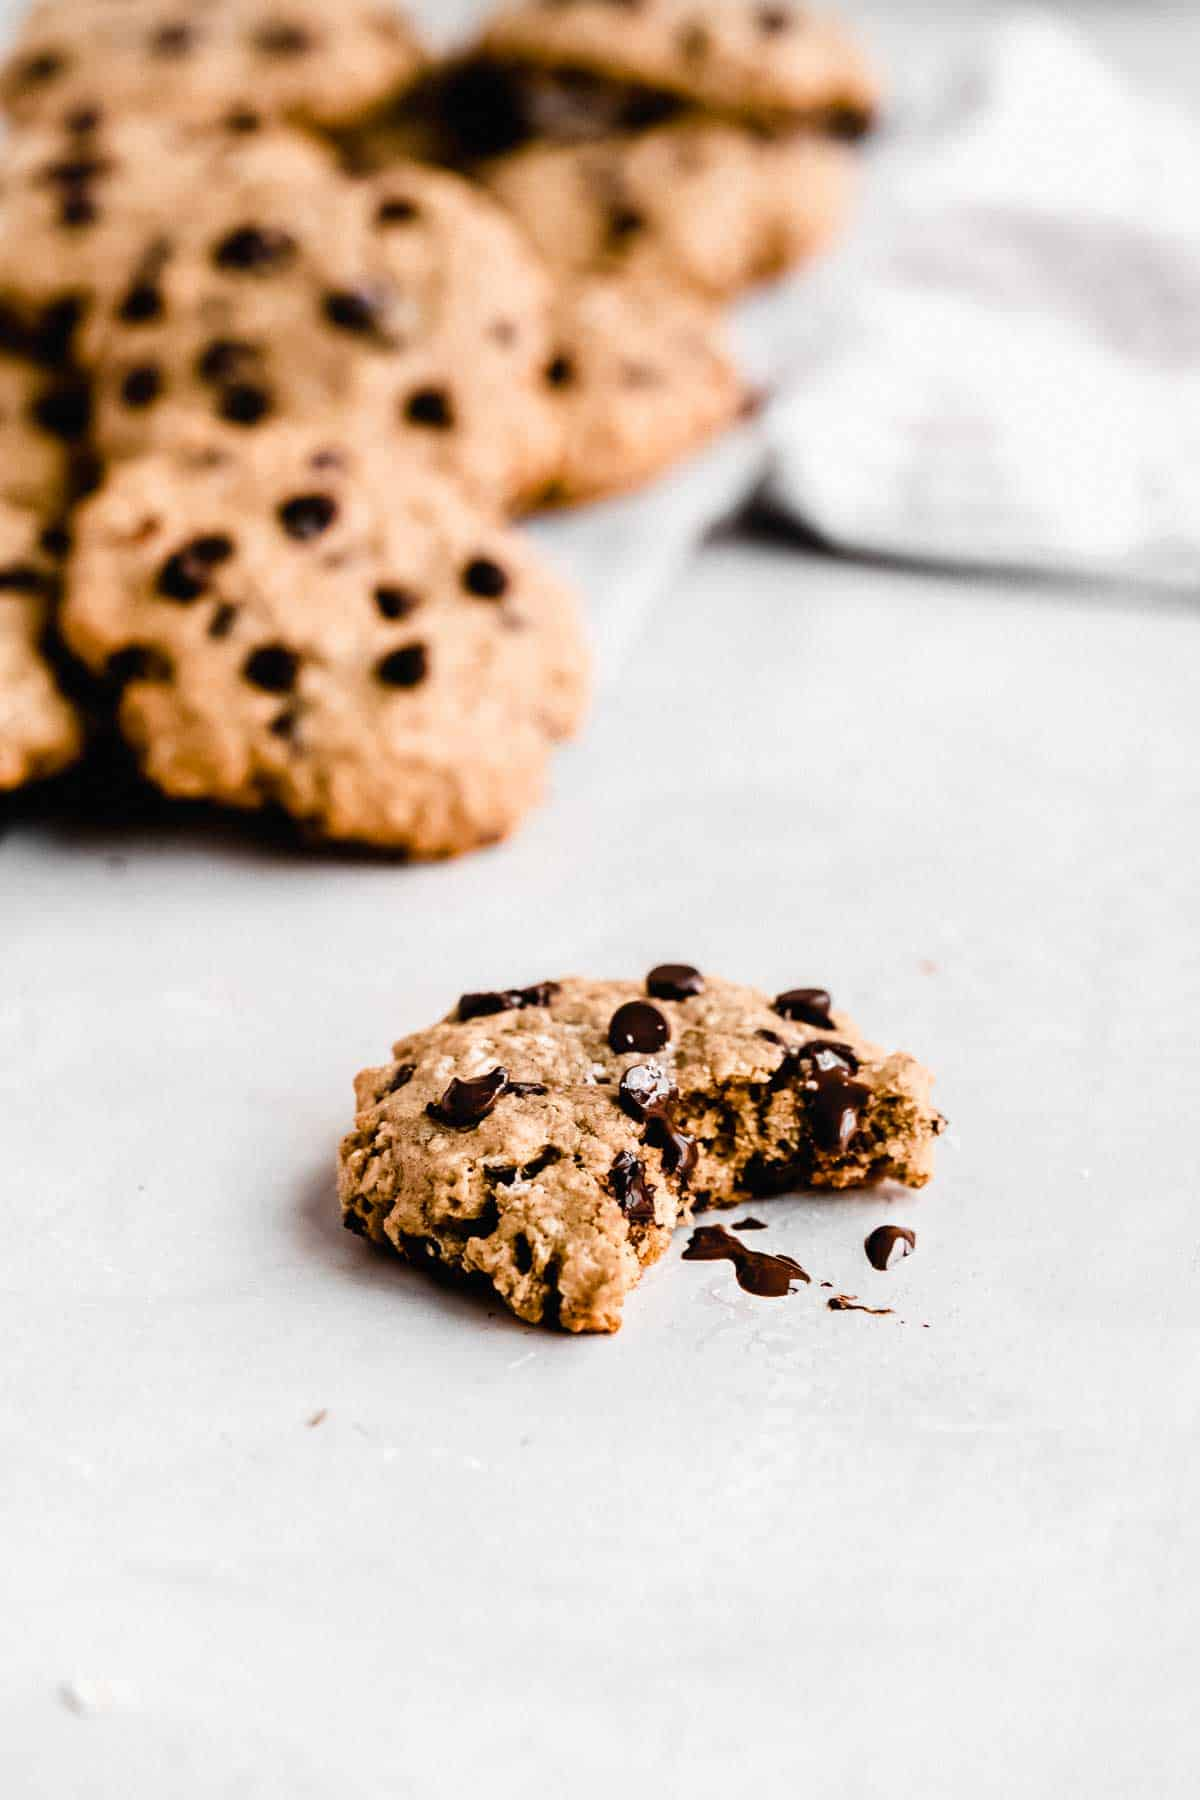 Close up image of a single Oatmeal Chocolate Chip Cookie with a bite taken out of it sitting on a marble slab.  Additional cookies are in the background.